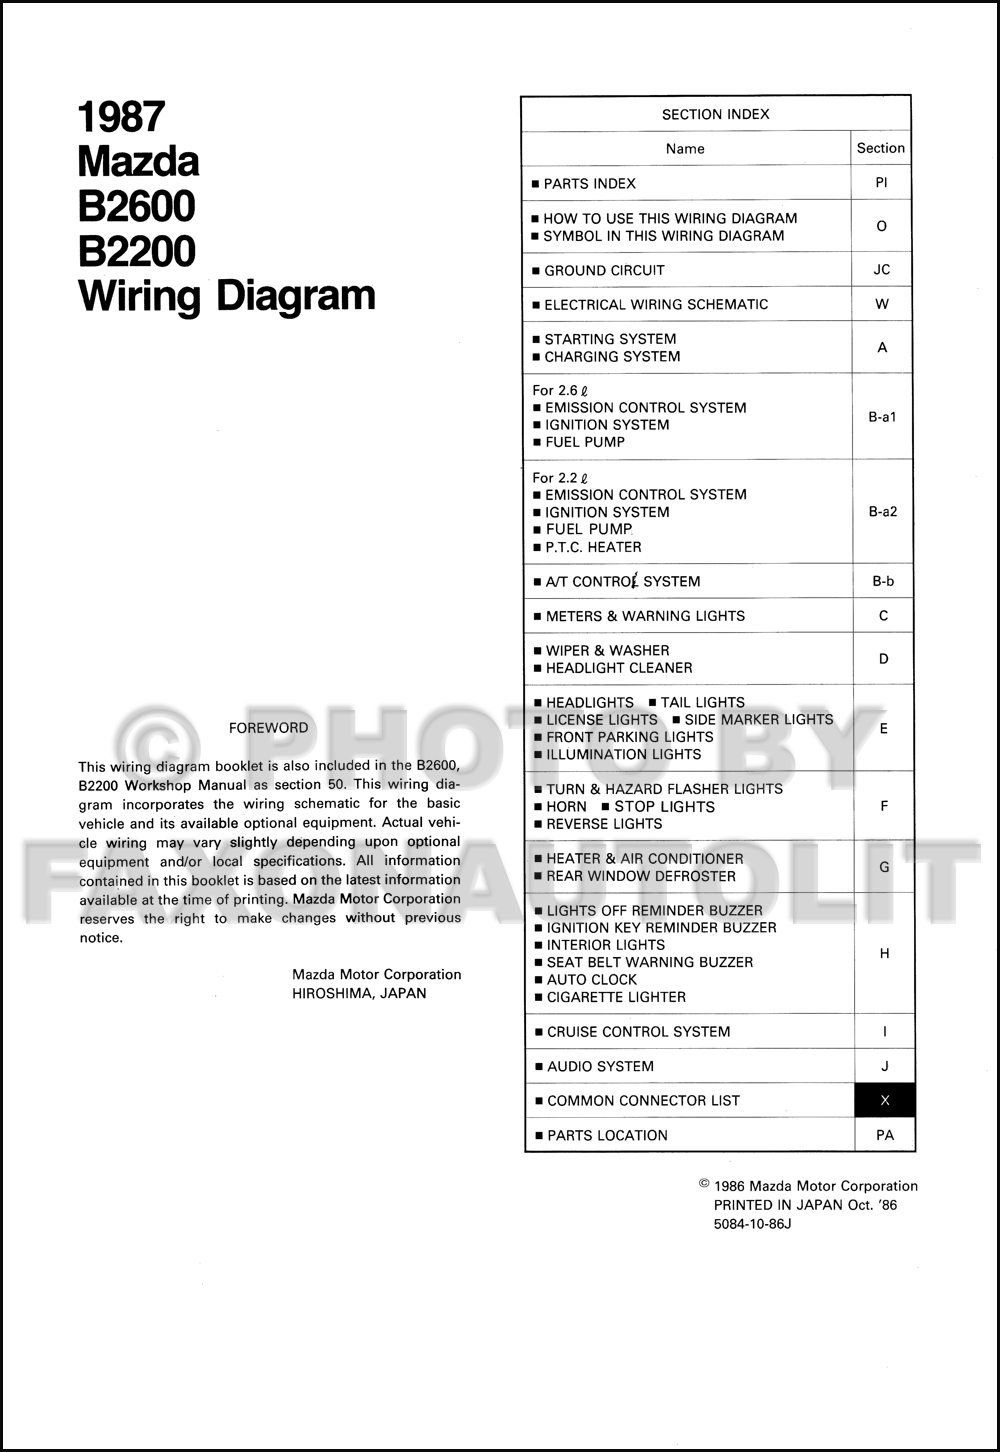 1987 Mazda B2200 B2600 Pickup Truck Wiring Diagram Manual Original. click  on thumbnail to zoom